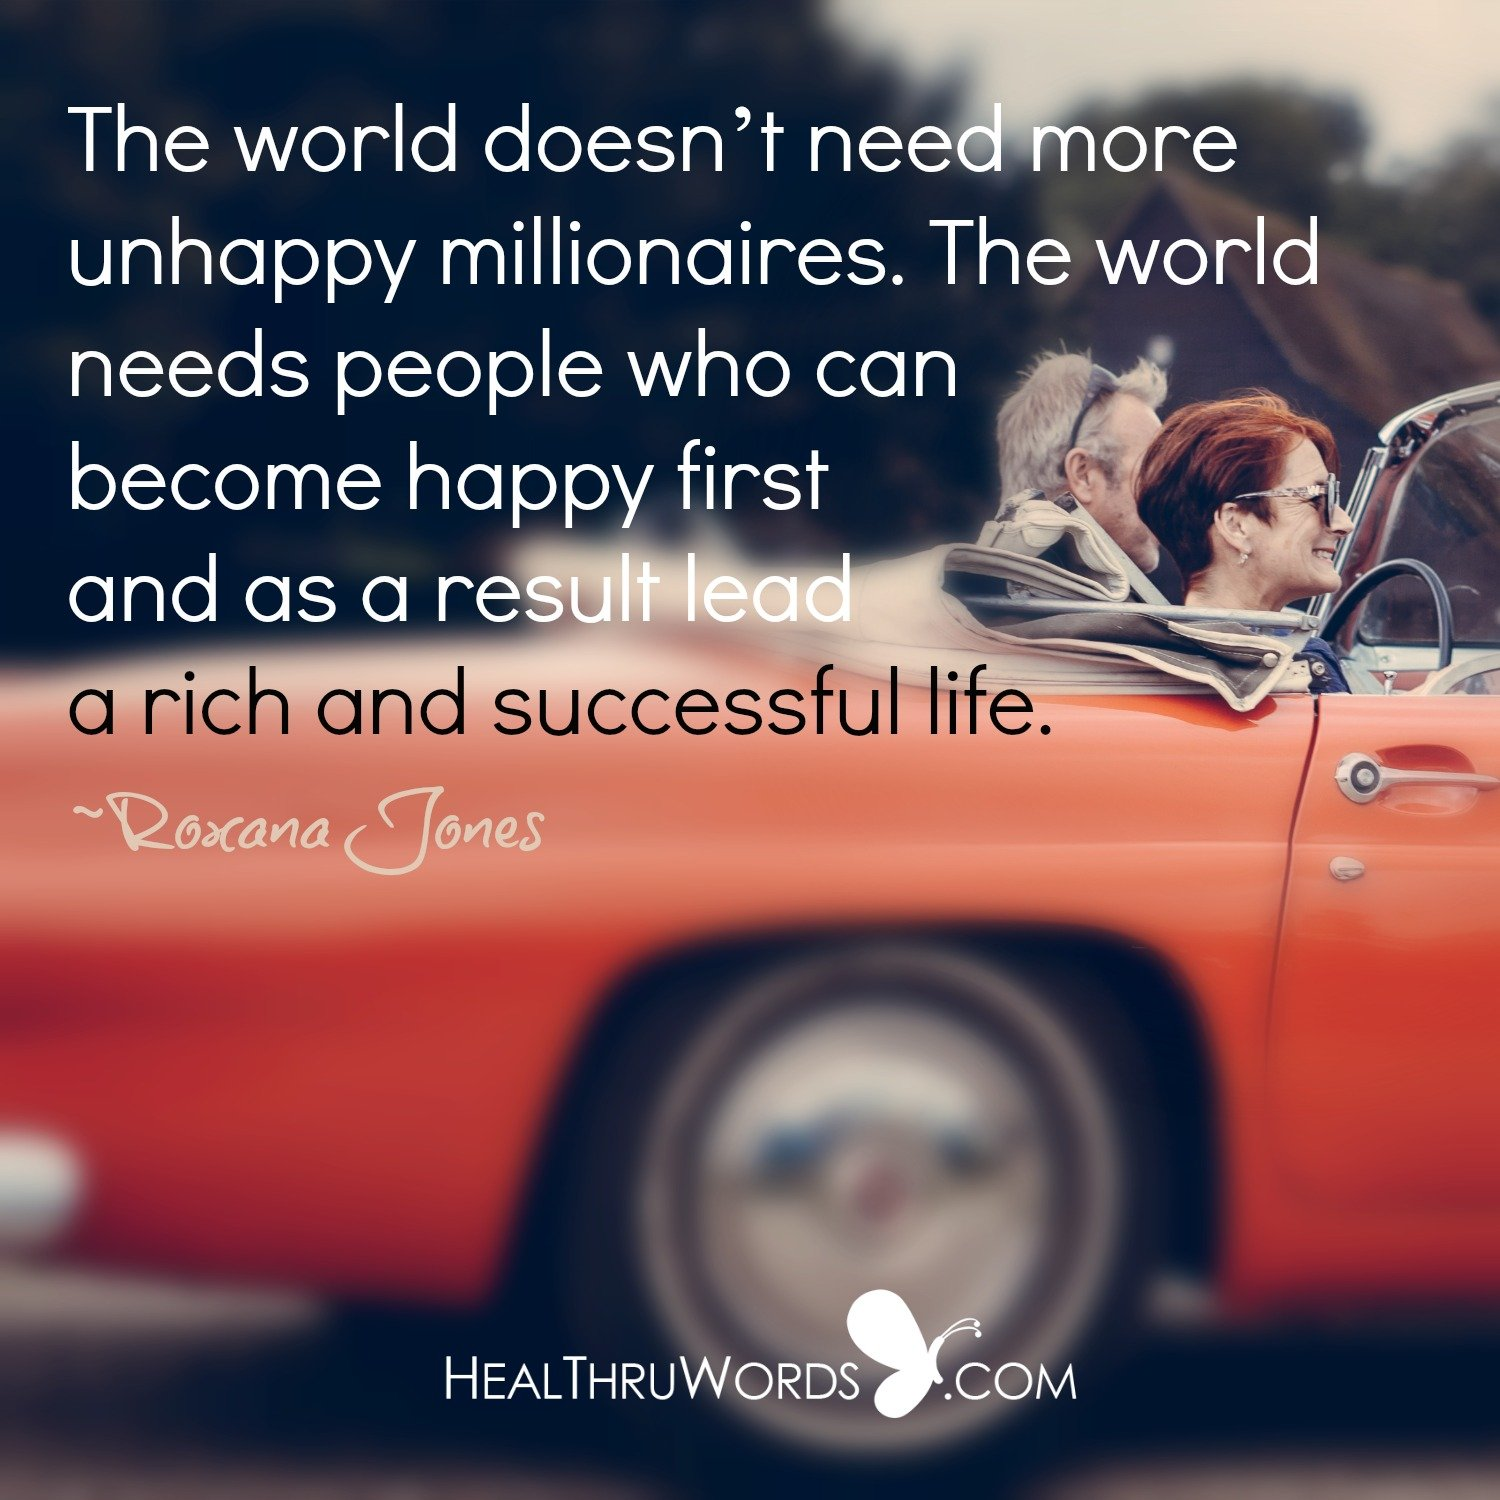 Inspirational Image: The New Millionaire